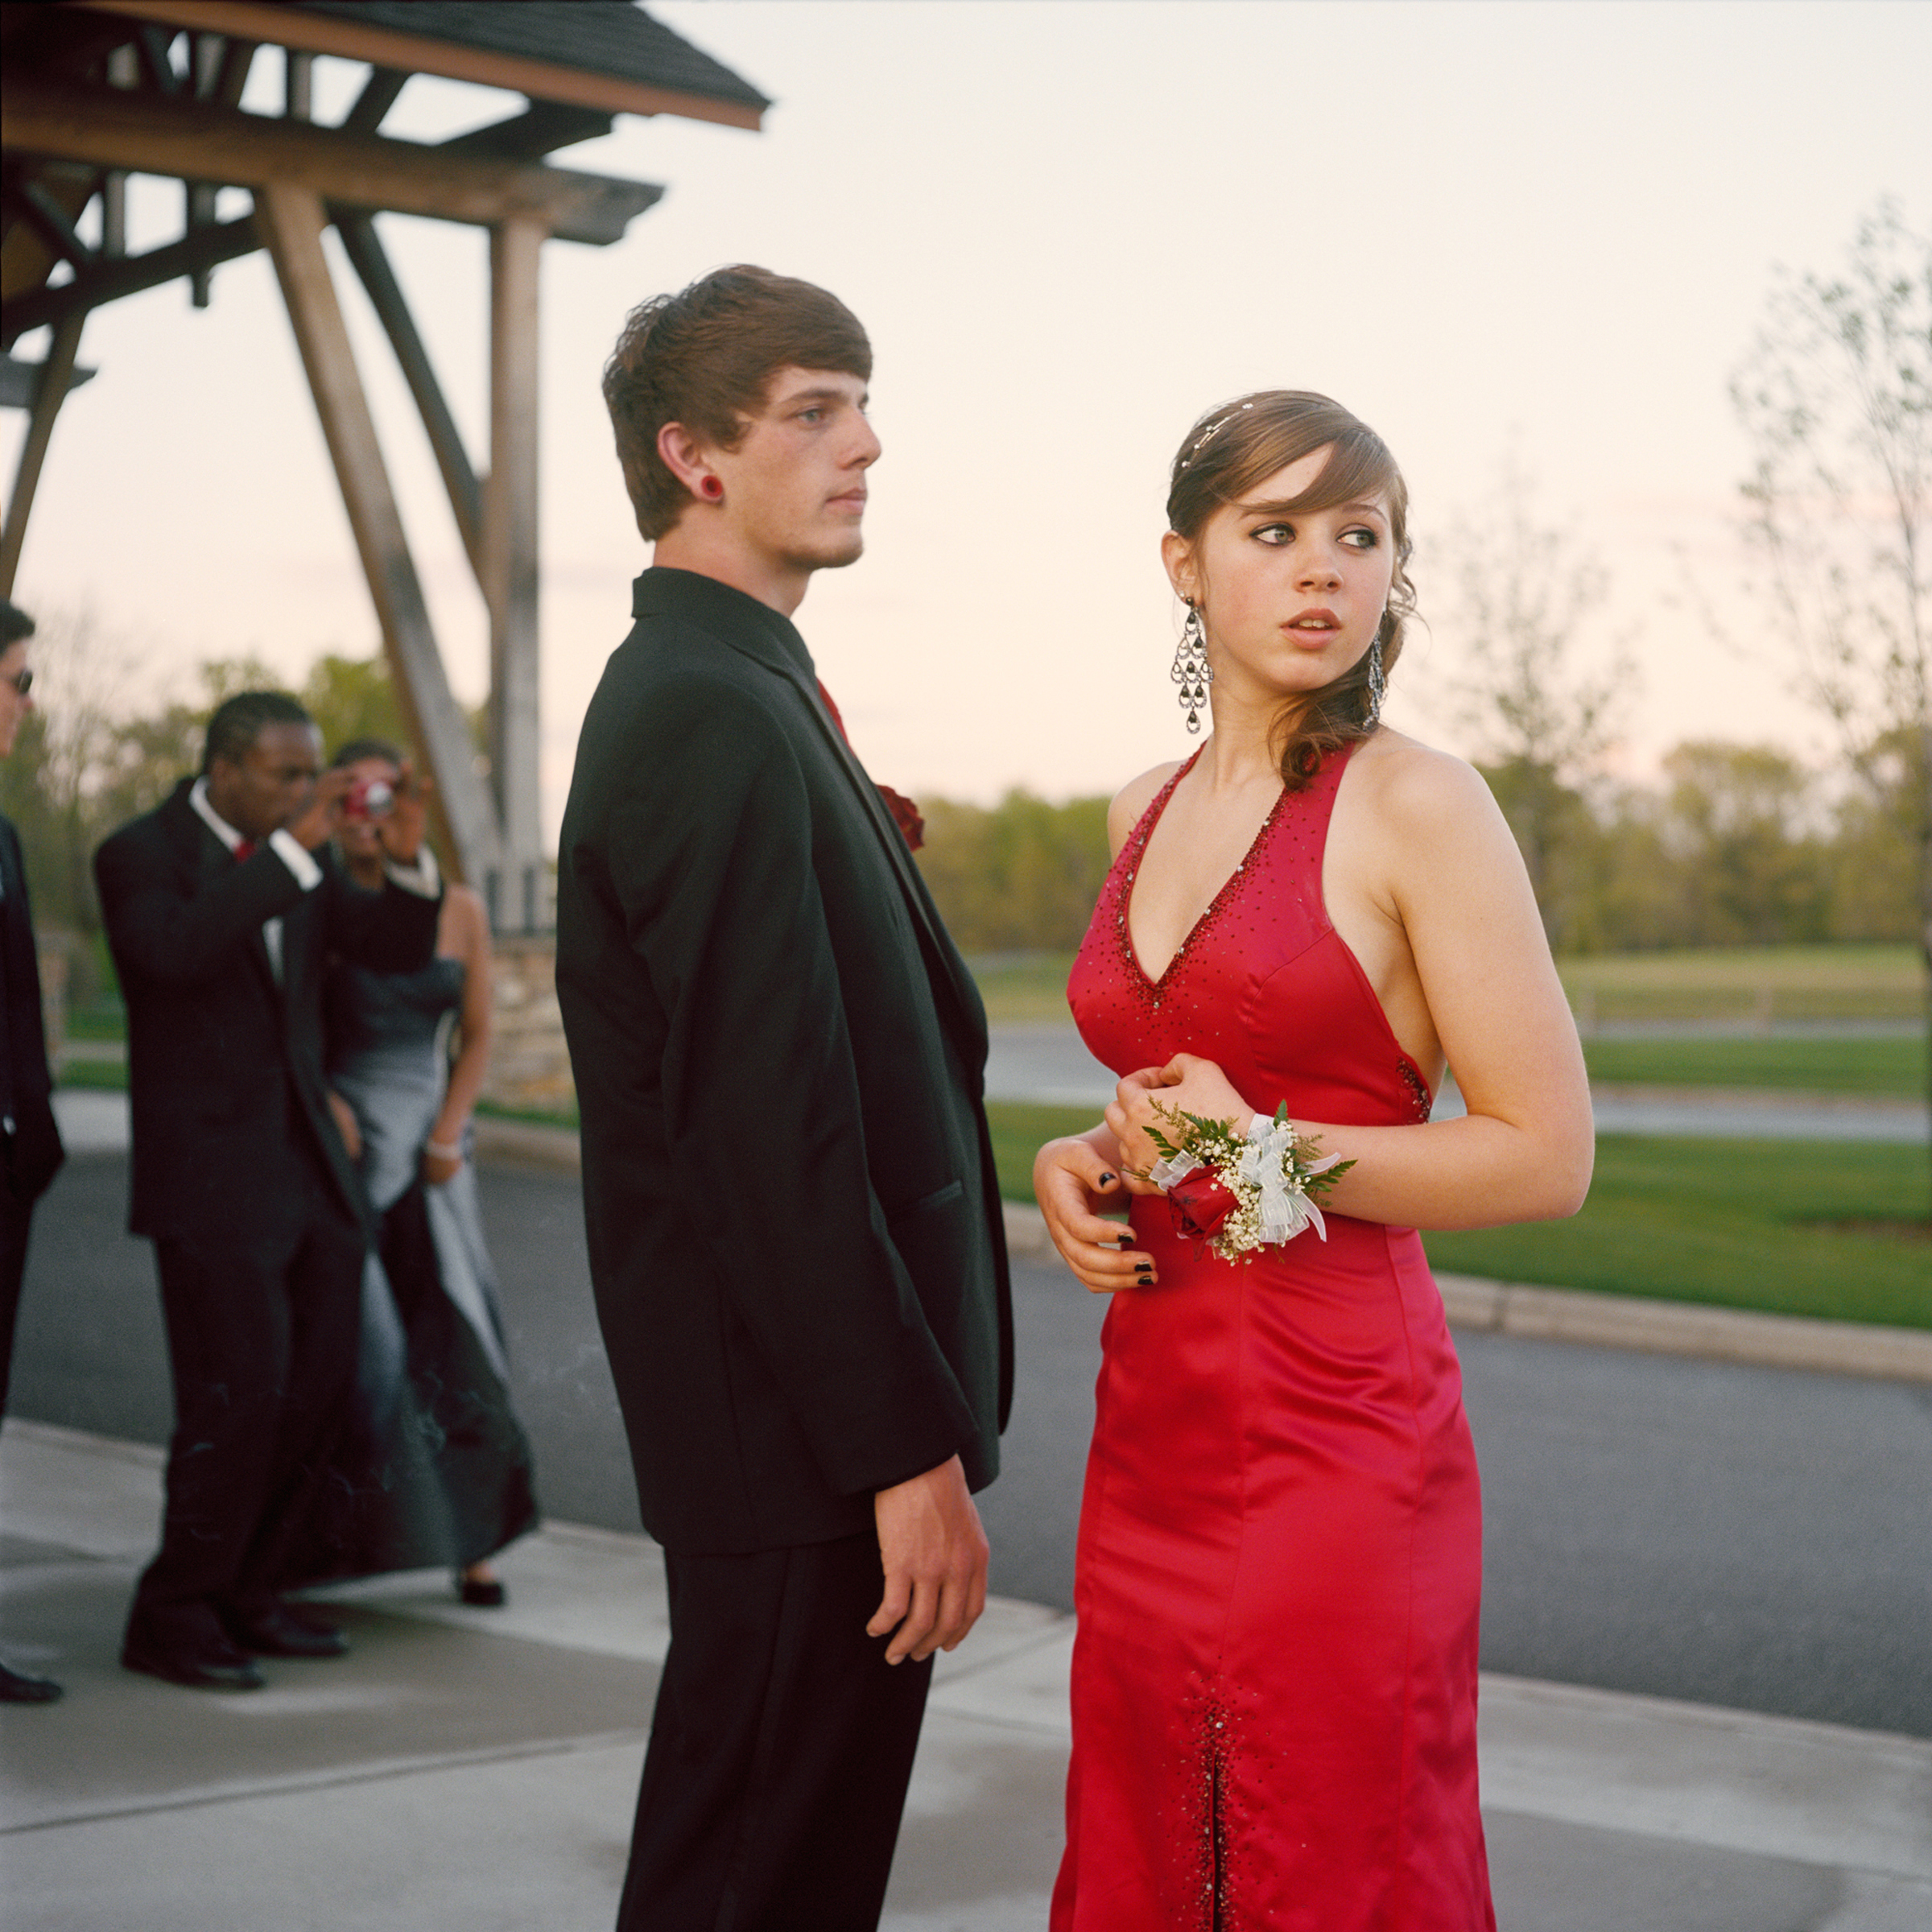 """<strong>In 2014, the average cost for a prom dress was $195, according to <a href=""""http://www.statisticbrain.com/prom-night-statistics/"""" title=""""Statistic Brain"""" target=""""_blank"""">Seventeen Magazine</a>. On top of this, a teen girl's prom expenses include shoes, handbag, hair, makeup, manicure and jewelry.  However, teen boys are often expected to bear the costs for many prom activities, and the average costs of a limousine for four hours can be $450 and prom tickets can be $75.  This excludes his tuxedo, accessories, their dinner and transportation. For help making a budget, get the <a href=""""http://www.practicalmoneyskills.com/resources/prom2014.php"""" title=""""Visa Plan'it Prom app"""" target=""""_blank"""">Visa Plan'it Prom app</a>.</strong>                                                                              Title: """"Nick and Angel,"""" from the series <em><a href=""""http://amyandersonart.com/crossroads.htm"""" title=""""At Risk, With Promise"""" target=""""_blank"""">At Risk, With Promise.</a></em>                                                                              <a href=""""http://amyandersonart.com/"""" title=""""Amy Anderson"""" target=""""_blank"""">Amy Anderson</a> has been documenting students at Crossroads Alternative High School for the last four years. Coming from diverse backgrounds, they have been unable to be successful in a traditional school setting for various reasons. Some are brilliant, kind, articulate teenagers; some are abused, addicted, angry youth…many are both. Though they carry the wounds and fears of their past, her portraits honor the strength that develops as they begin a new journey and make changes and choices that will shape their lives."""